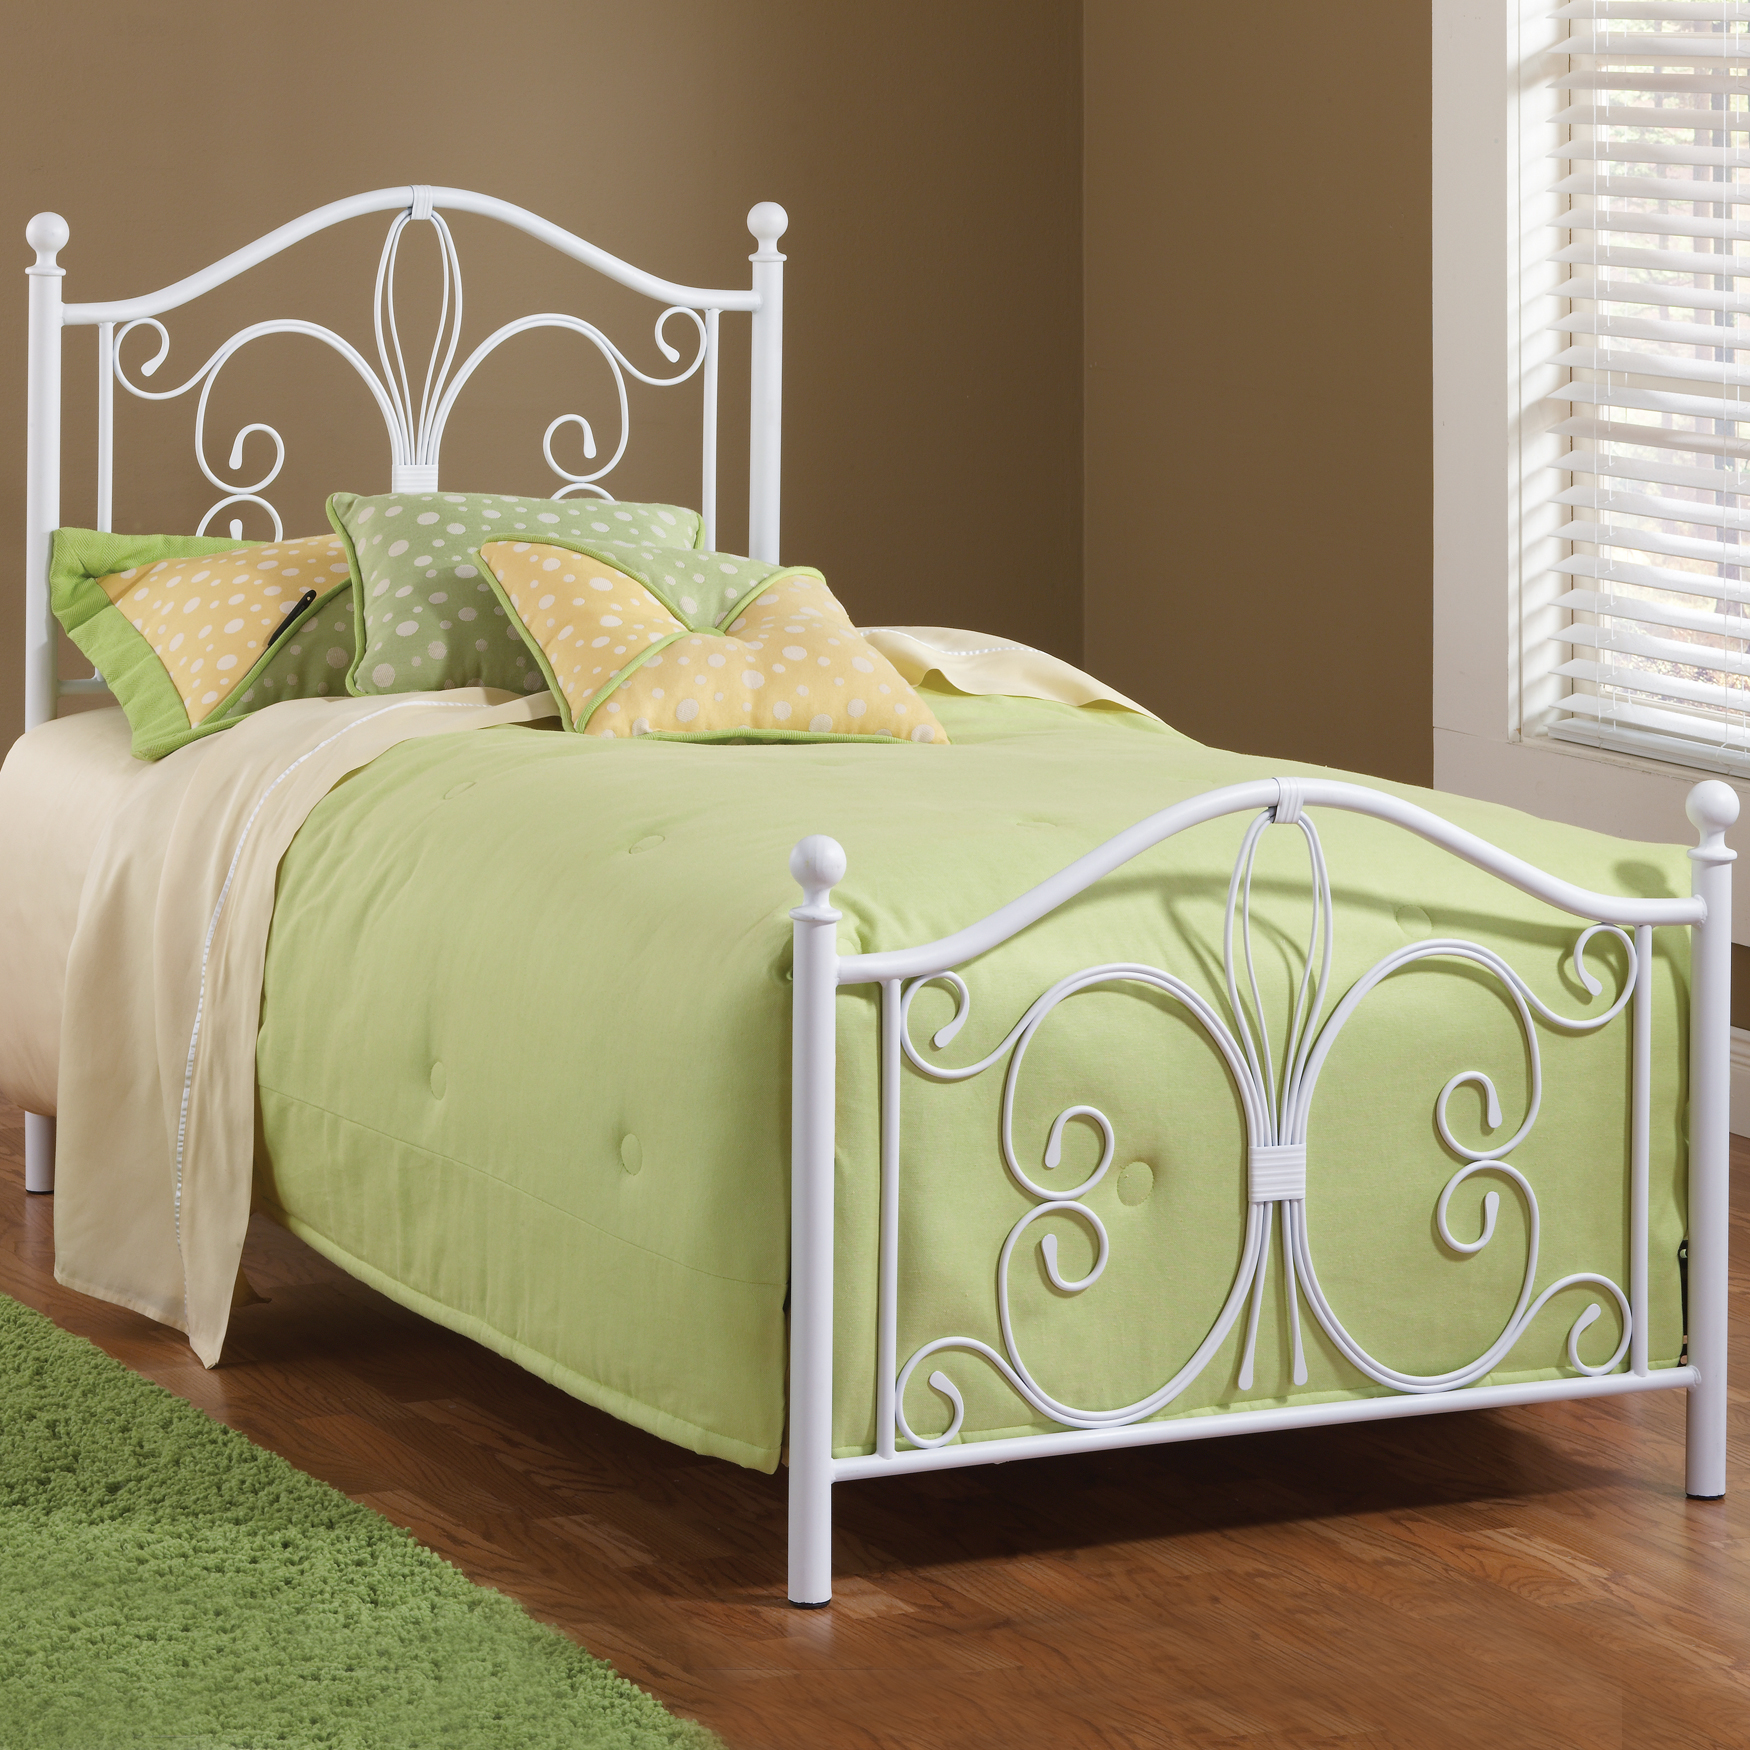 Hillsdale Ruby Twin Bed Set with Rails, WHITE